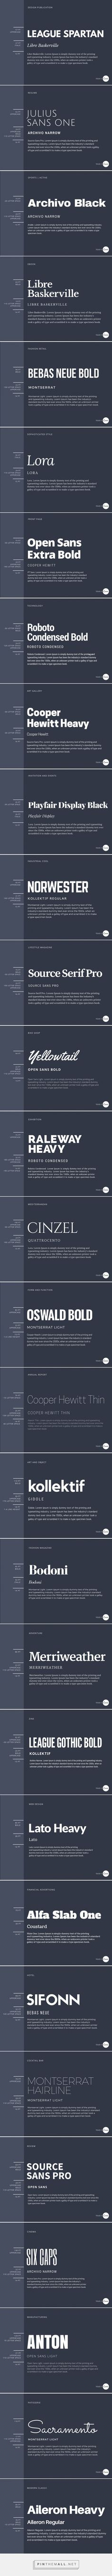 The Ultimate Guide to Font Pairing - created via https://pinthemall.net